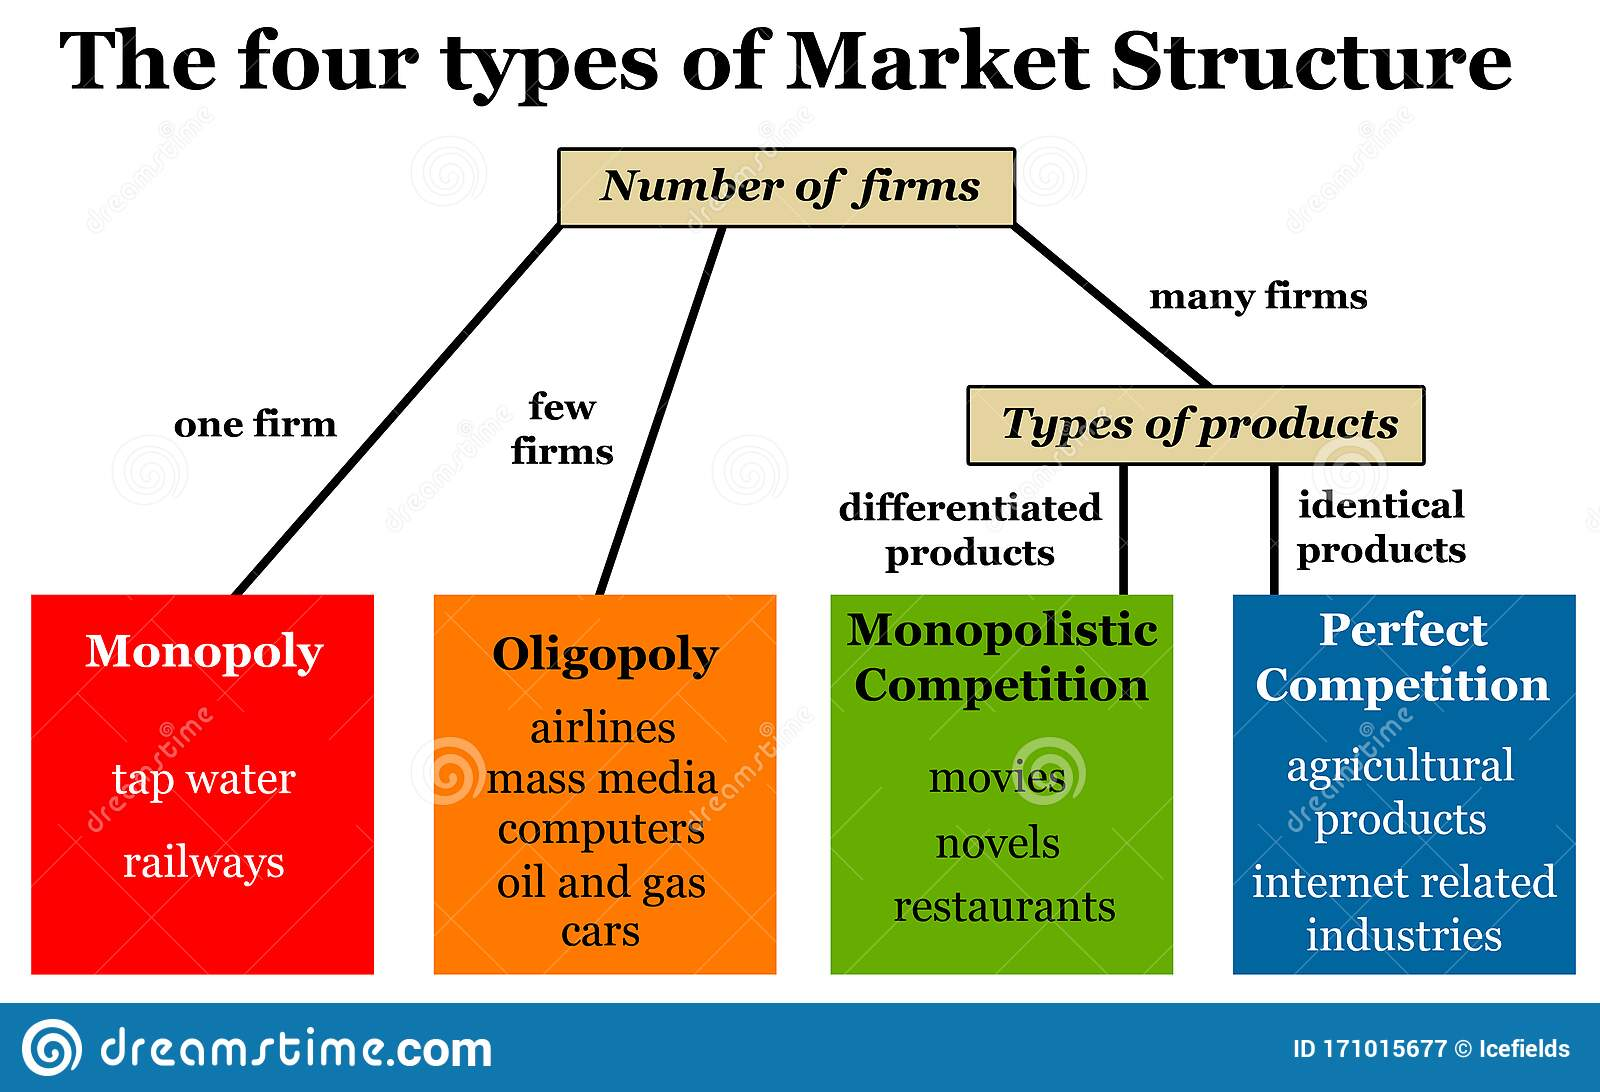 Types of market structures - How to launch your product